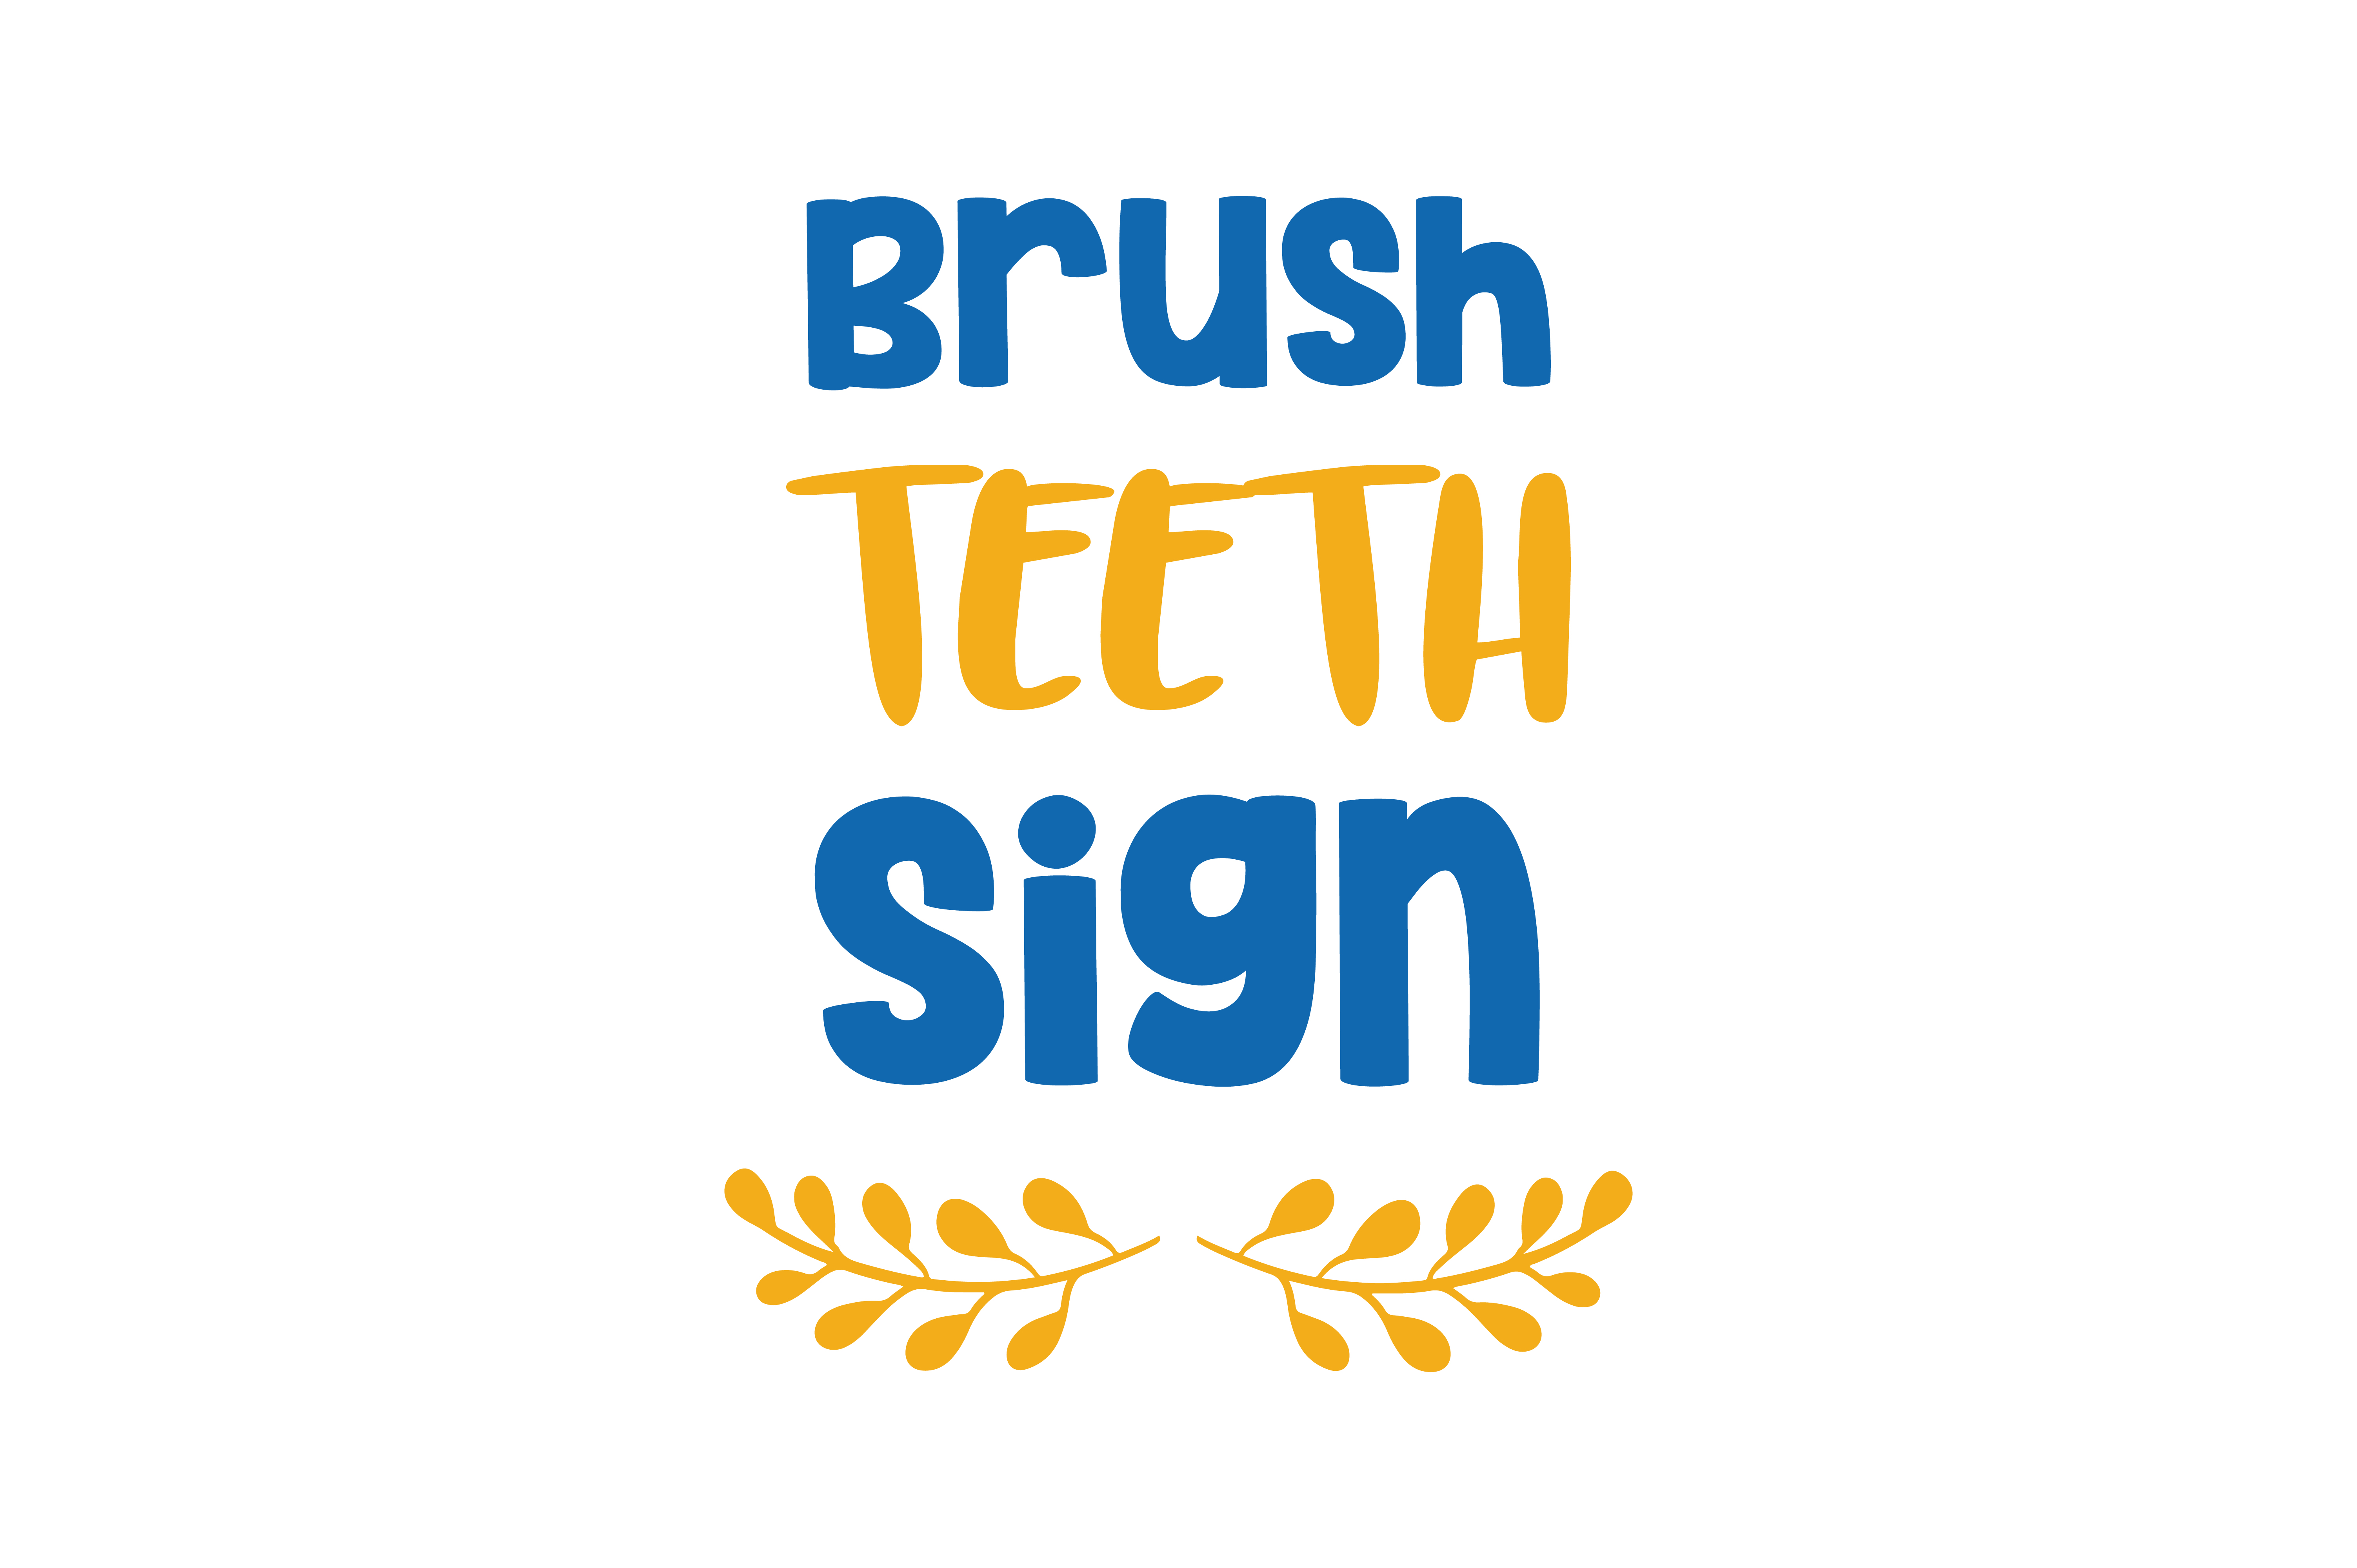 Download Free Brush Teeth Sign Quote Svg Cut Graphic By Thelucky Creative for Cricut Explore, Silhouette and other cutting machines.